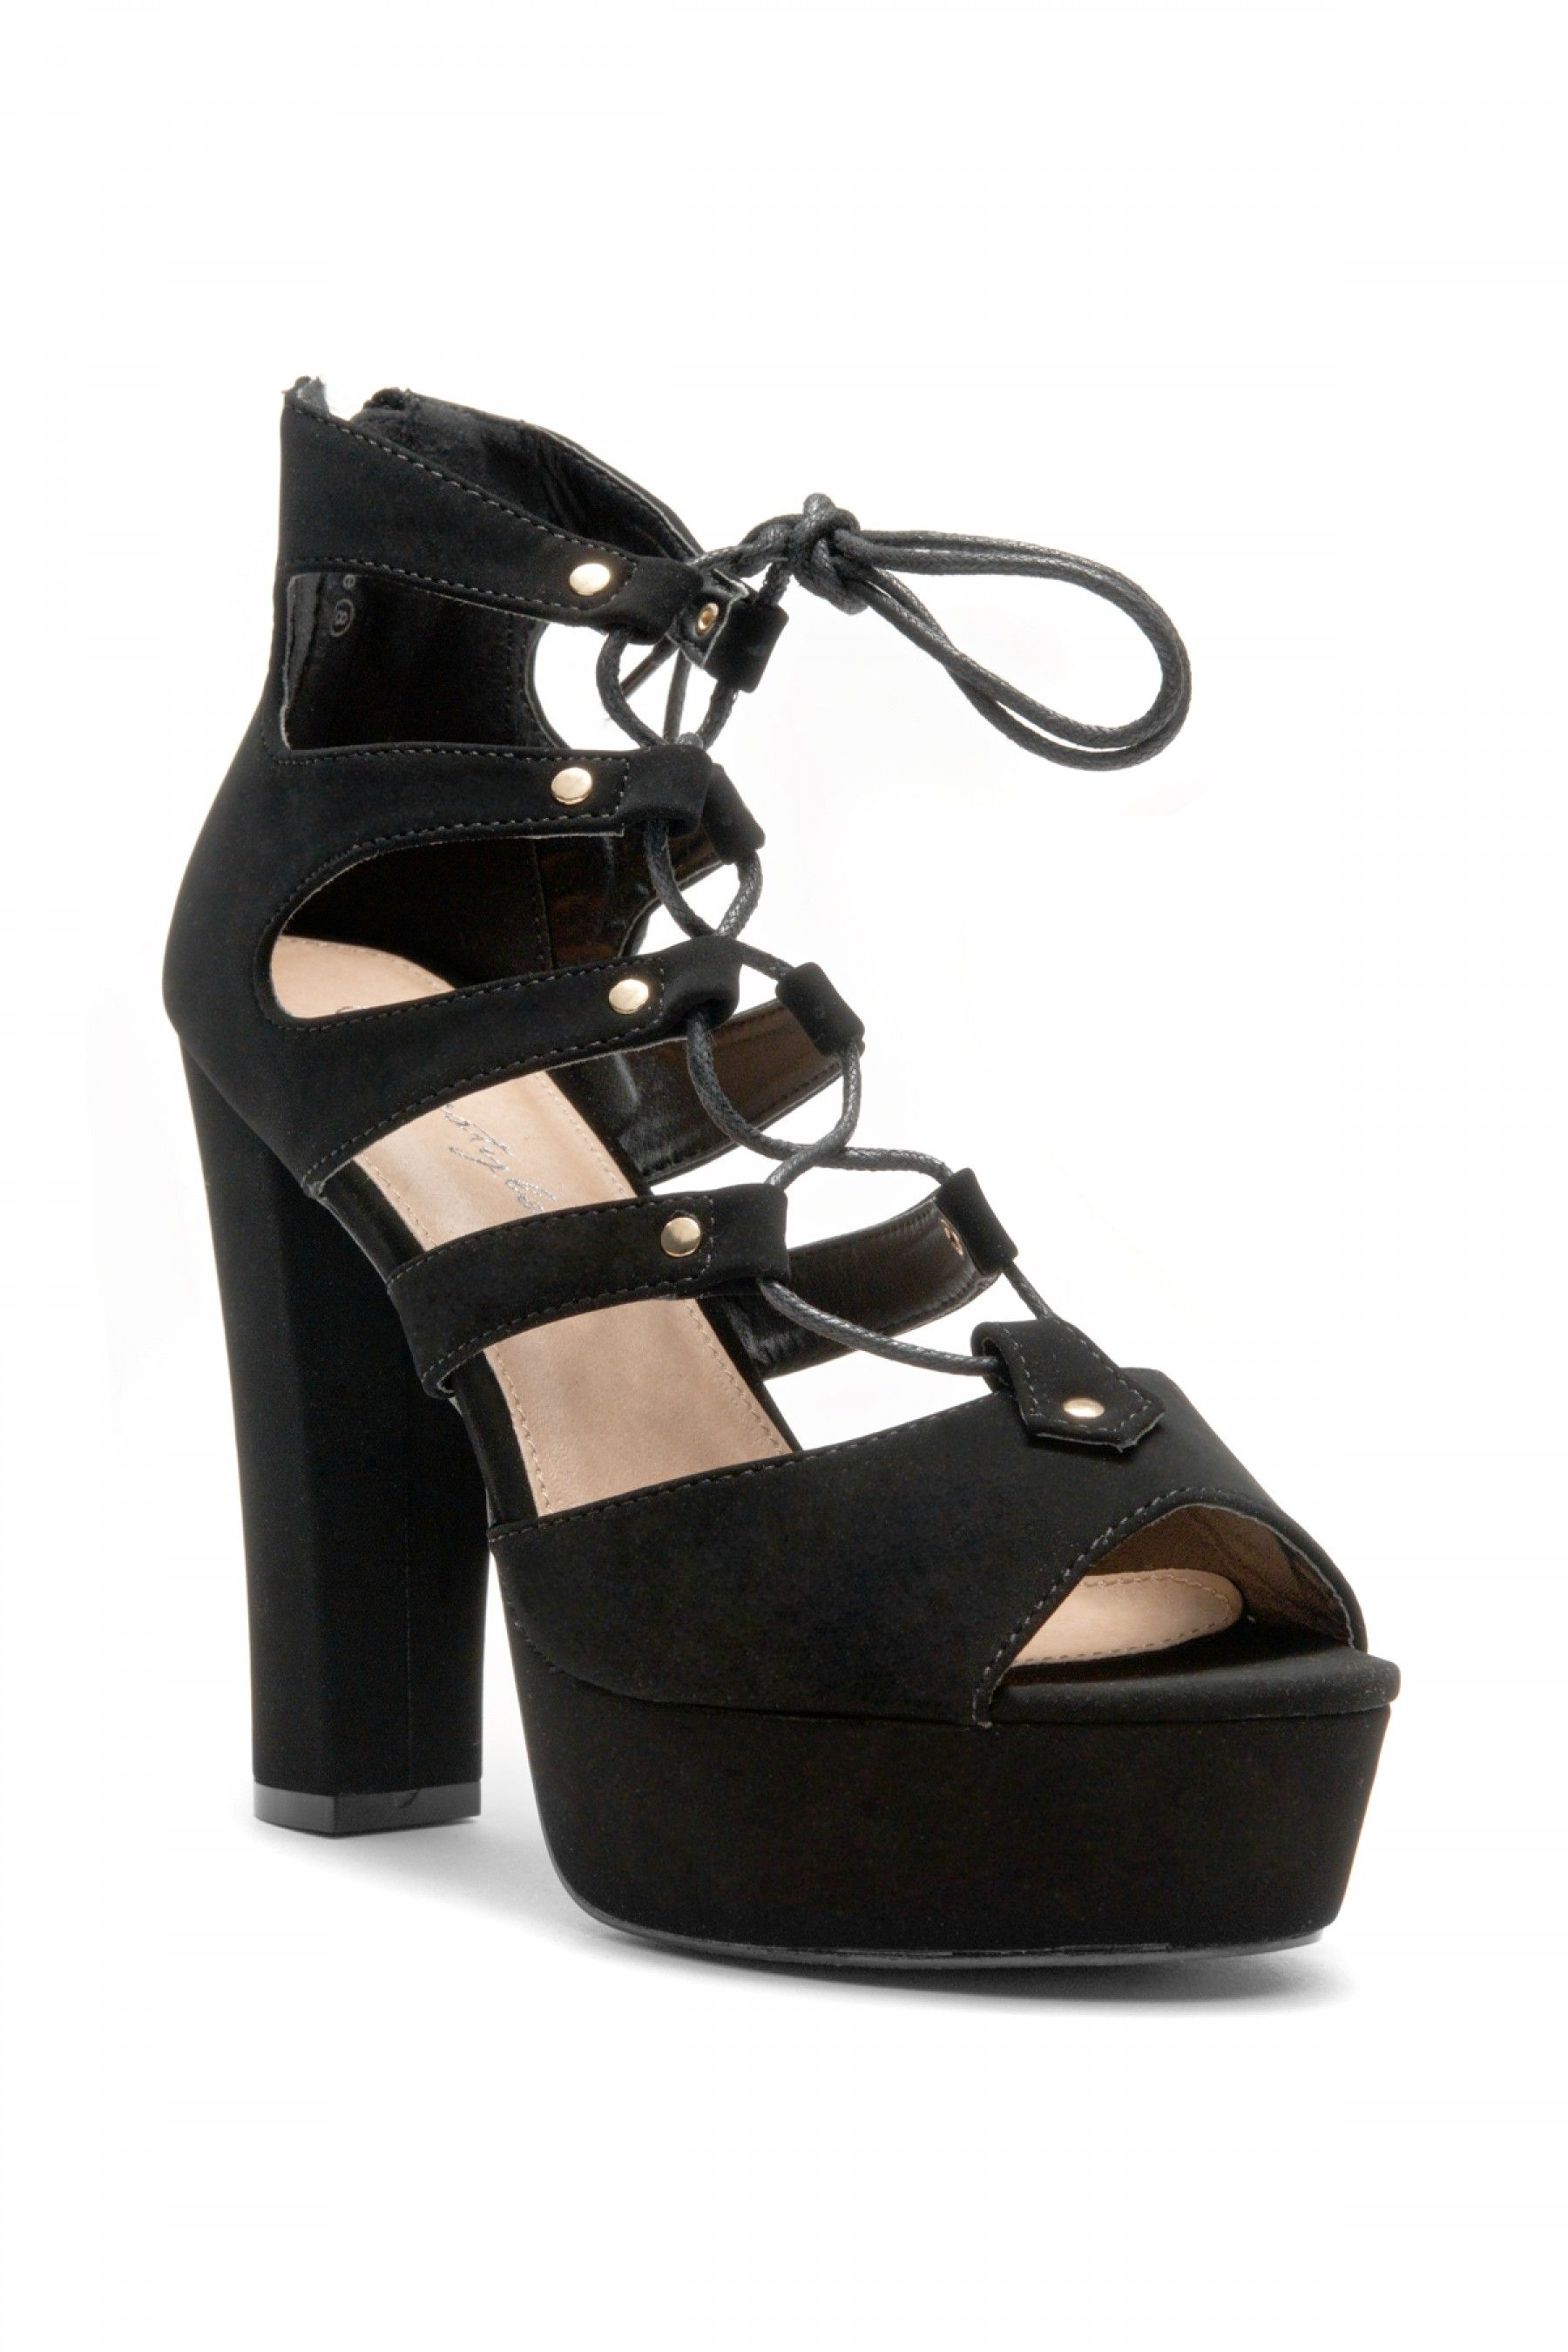 1dfb1f6a01 HerStyle Calliiee Lace up Platform Chunky Heel (Black) | Shoeland ...